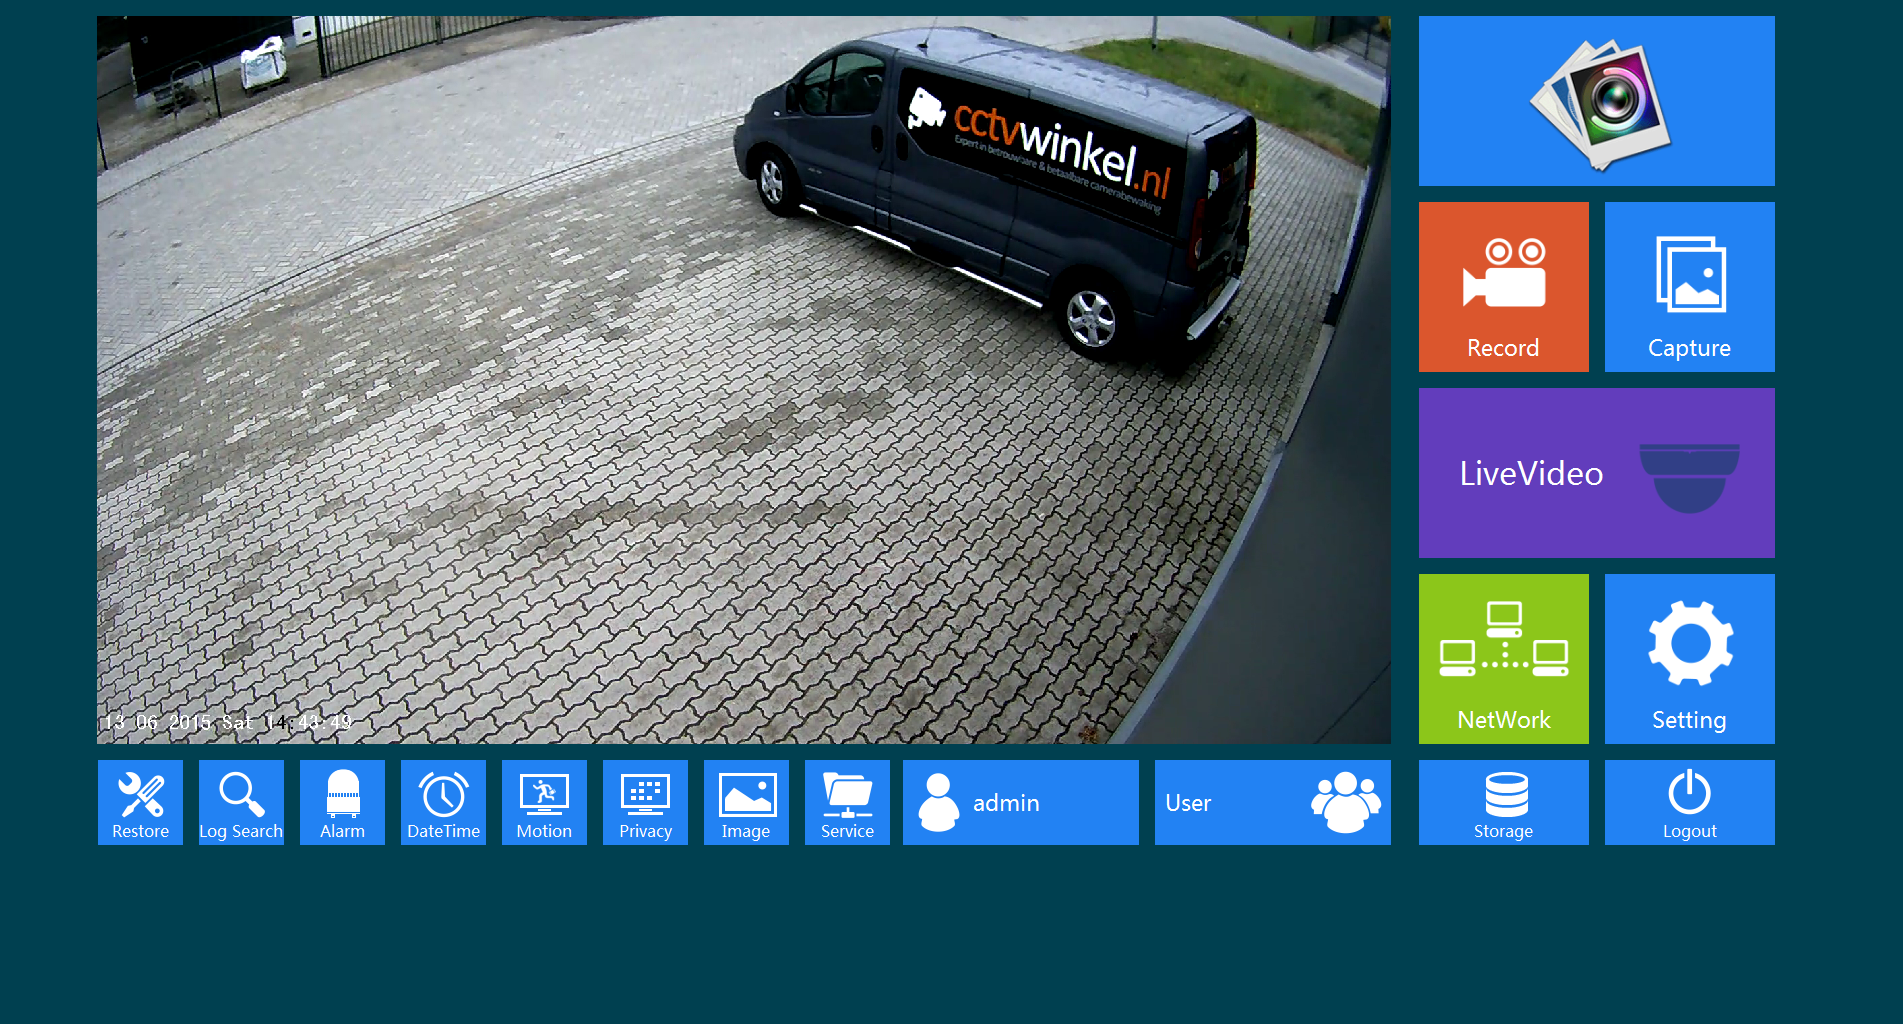 IP camera beginscherm